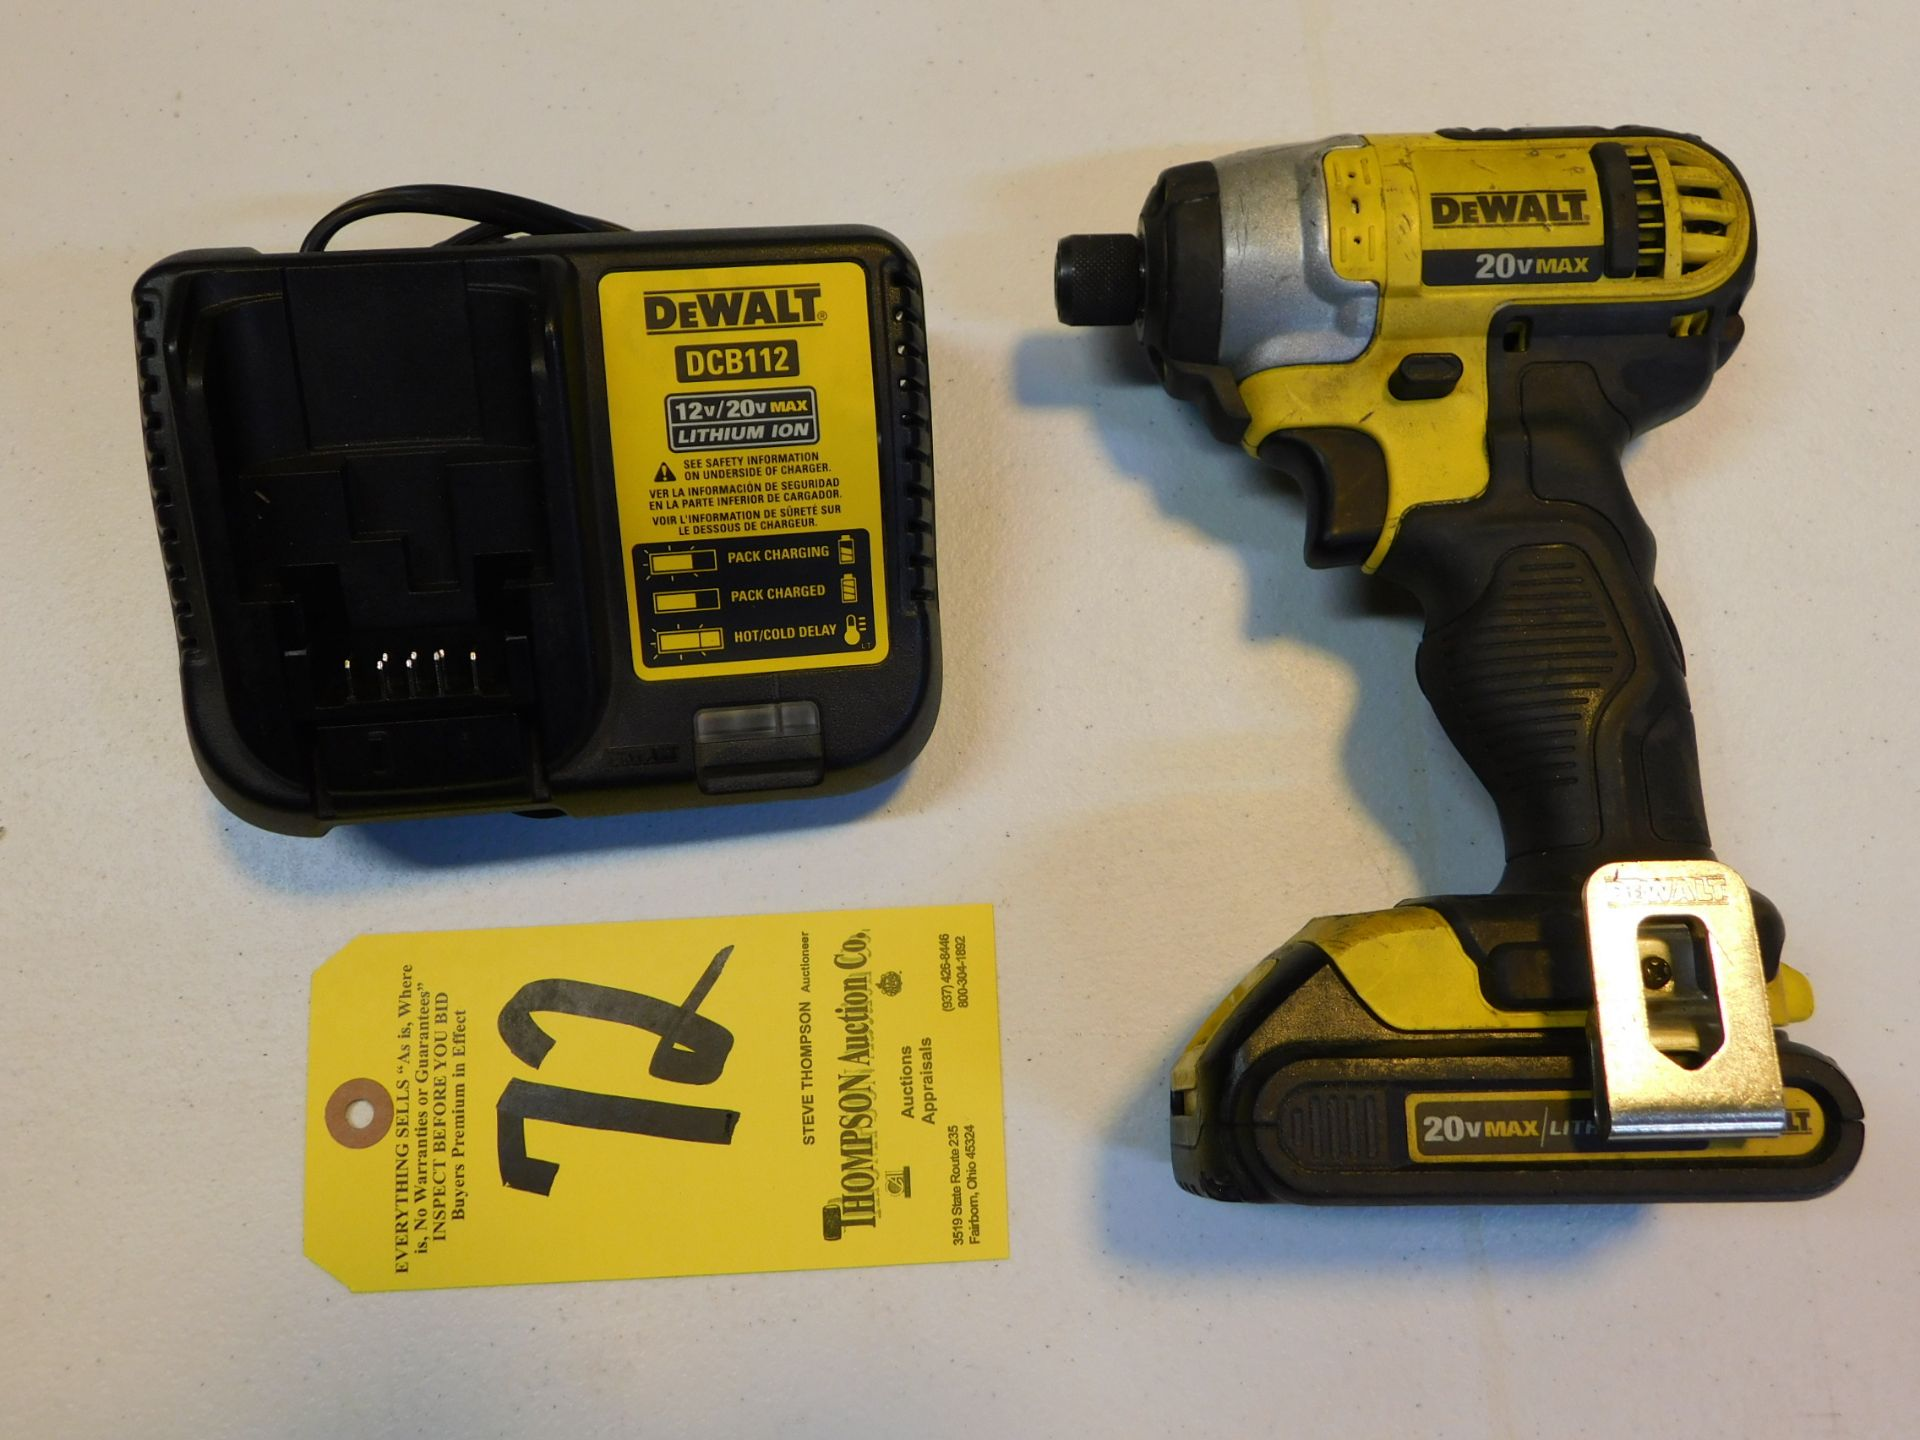 Lot 72 - Dewalt DCF885 Cordless 20V Impact Driver with Battery and Charger, Lot Location 3204 Olympia Dr.